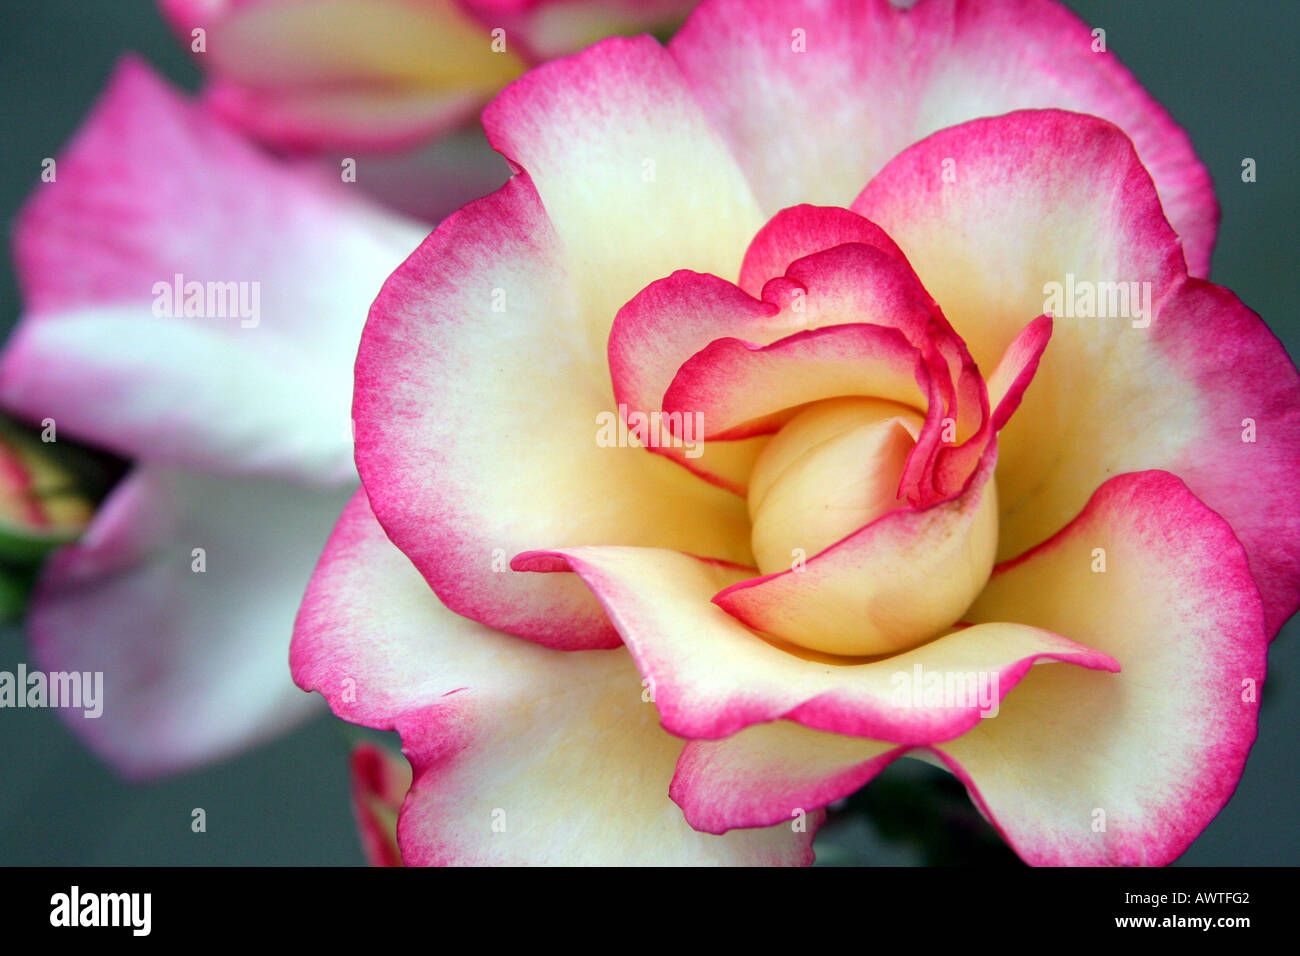 White Flower With Pink Edges Stock Photo 9514817 Alamy